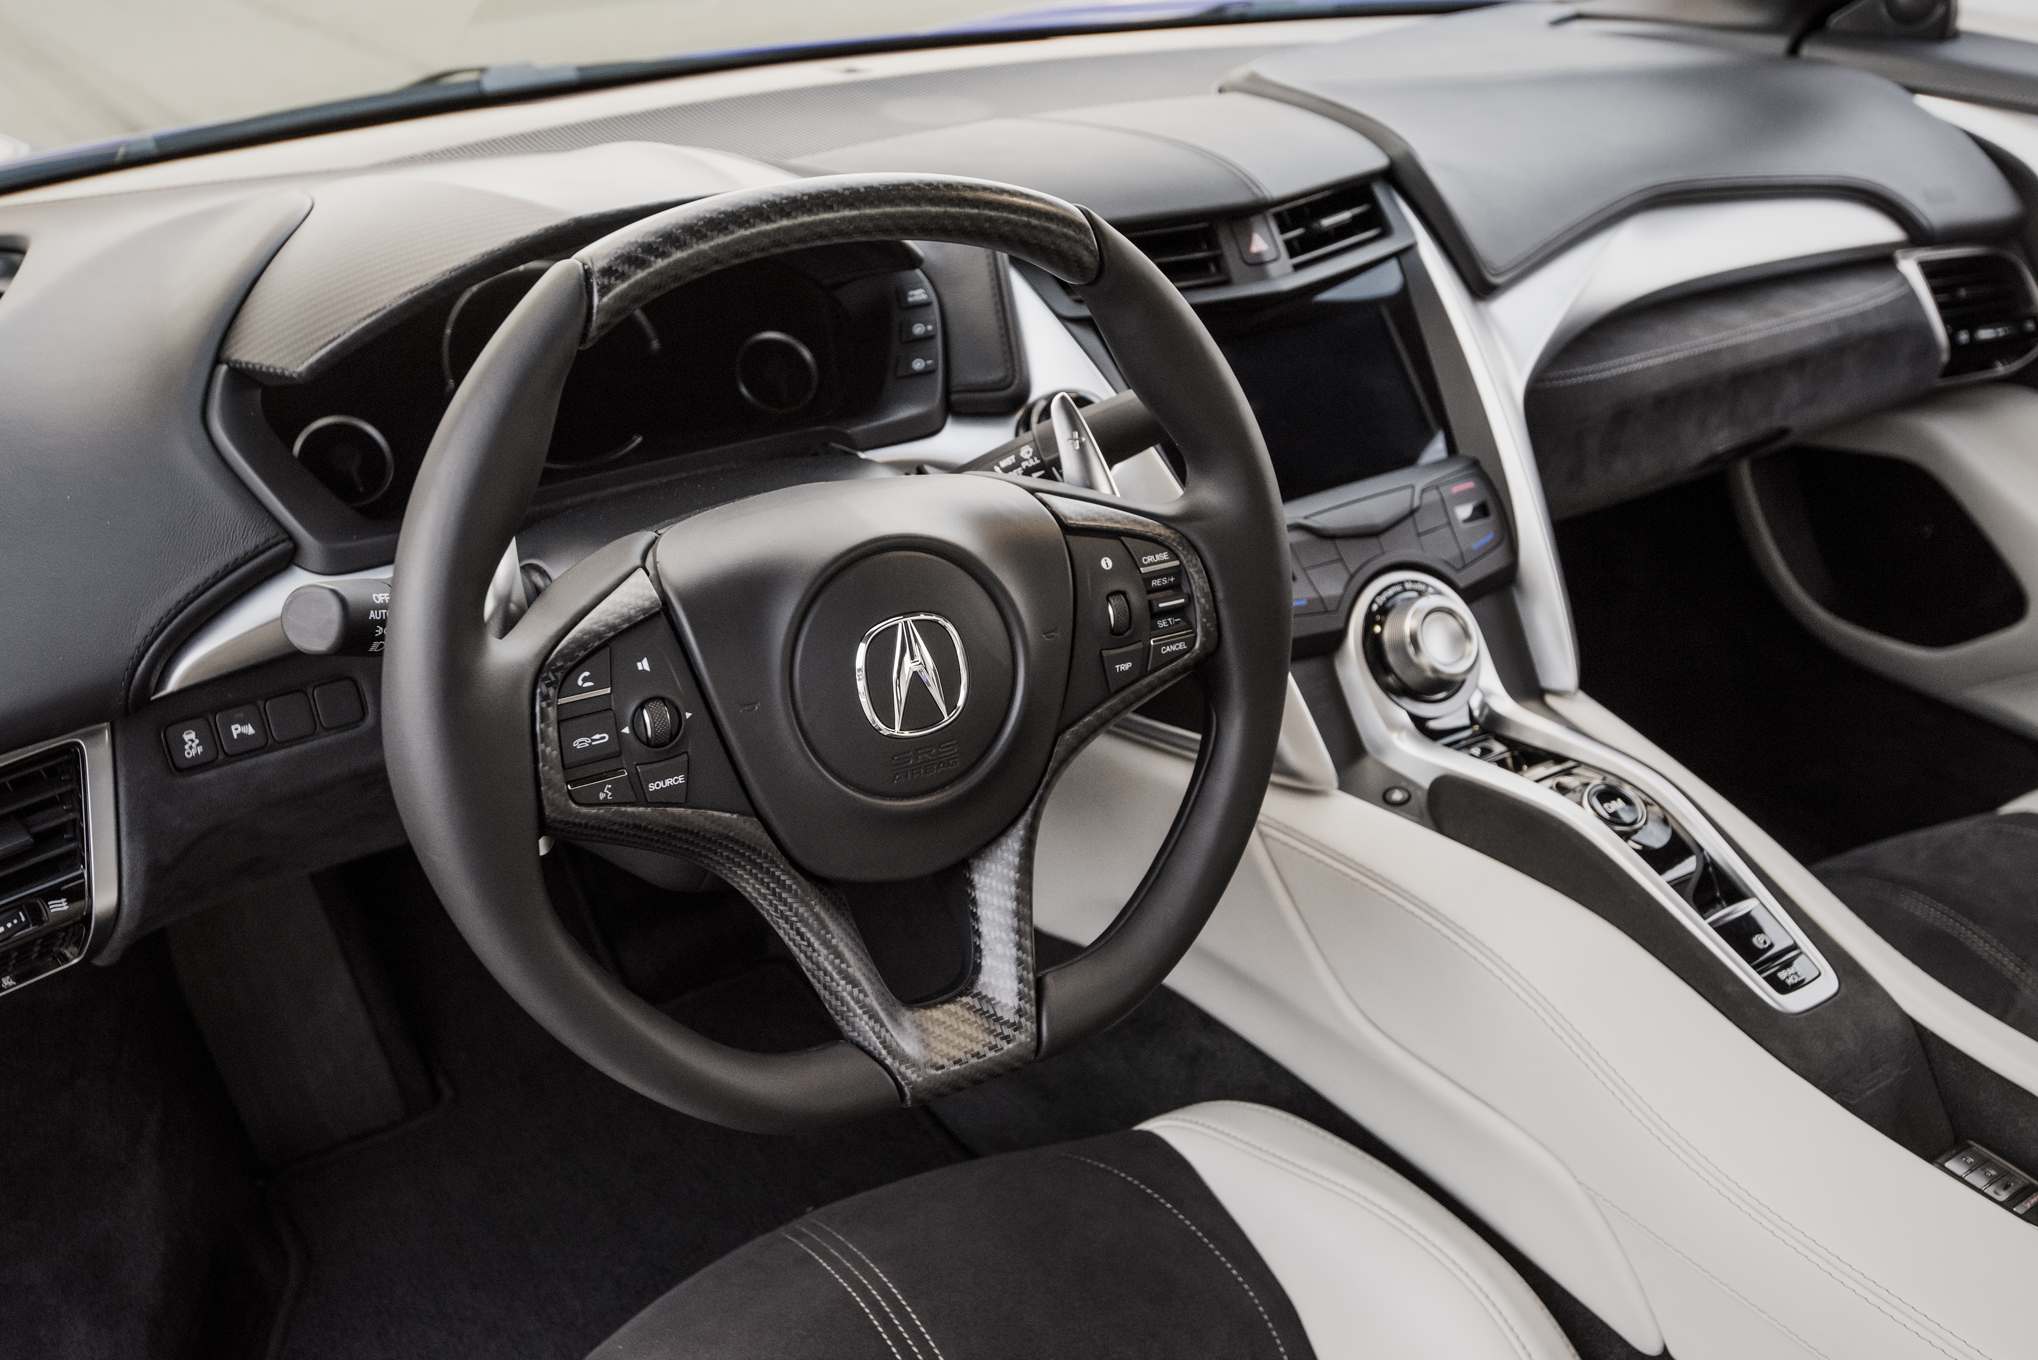 2017 acura nsx first drive reviews stun world with definitive supercar